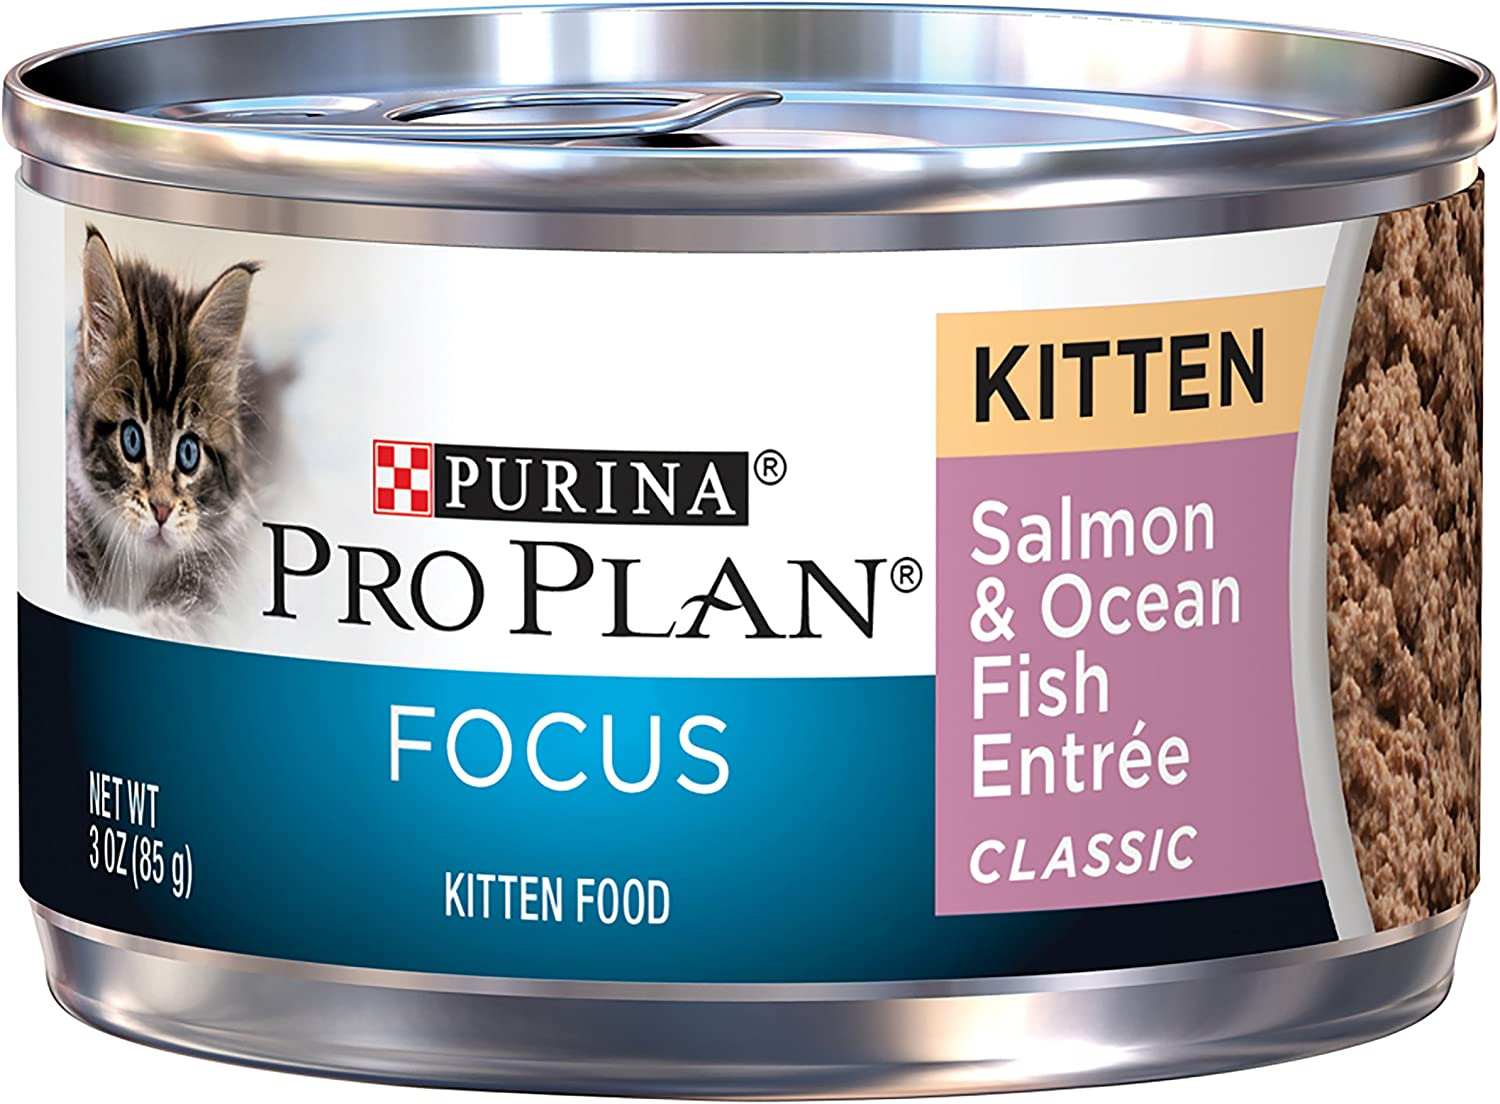 Purina Pro Plan Pate Wet Kitten Food, FOCUS Salmon & Ocean Fish Entree - (24) 3 oz. Pull-Top Cans